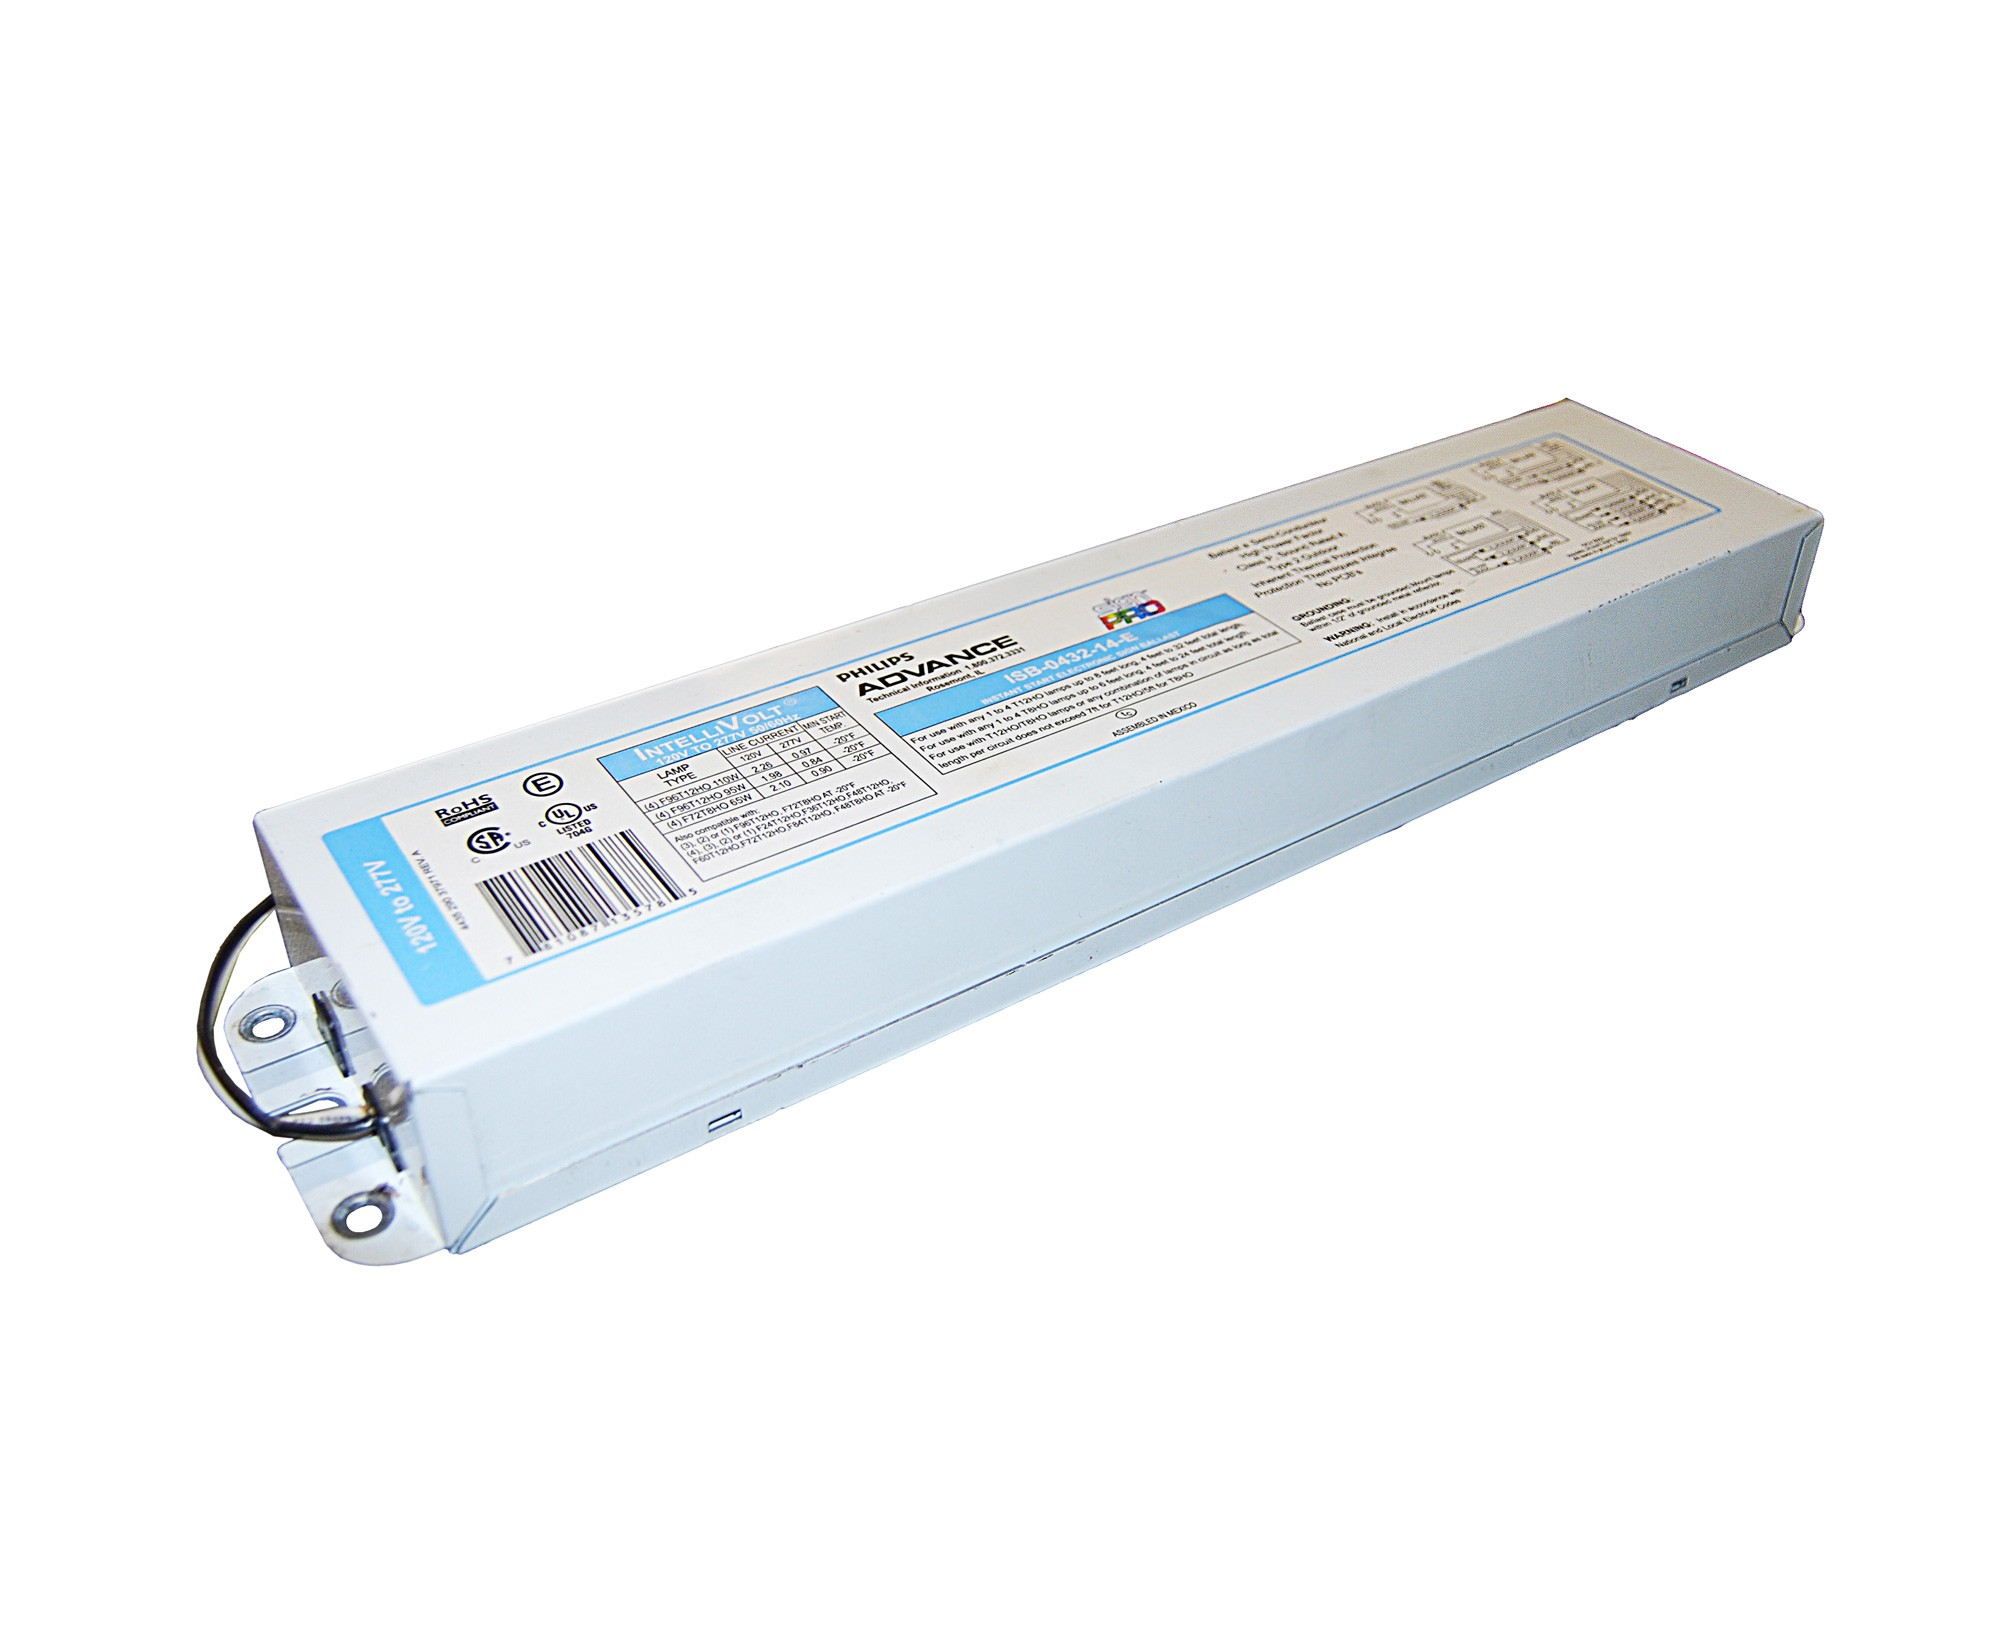 Advance isb 0432 14 e electronic sign ballast advance isb 0432 14 e electronic sign ballast arubaitofo Choice Image